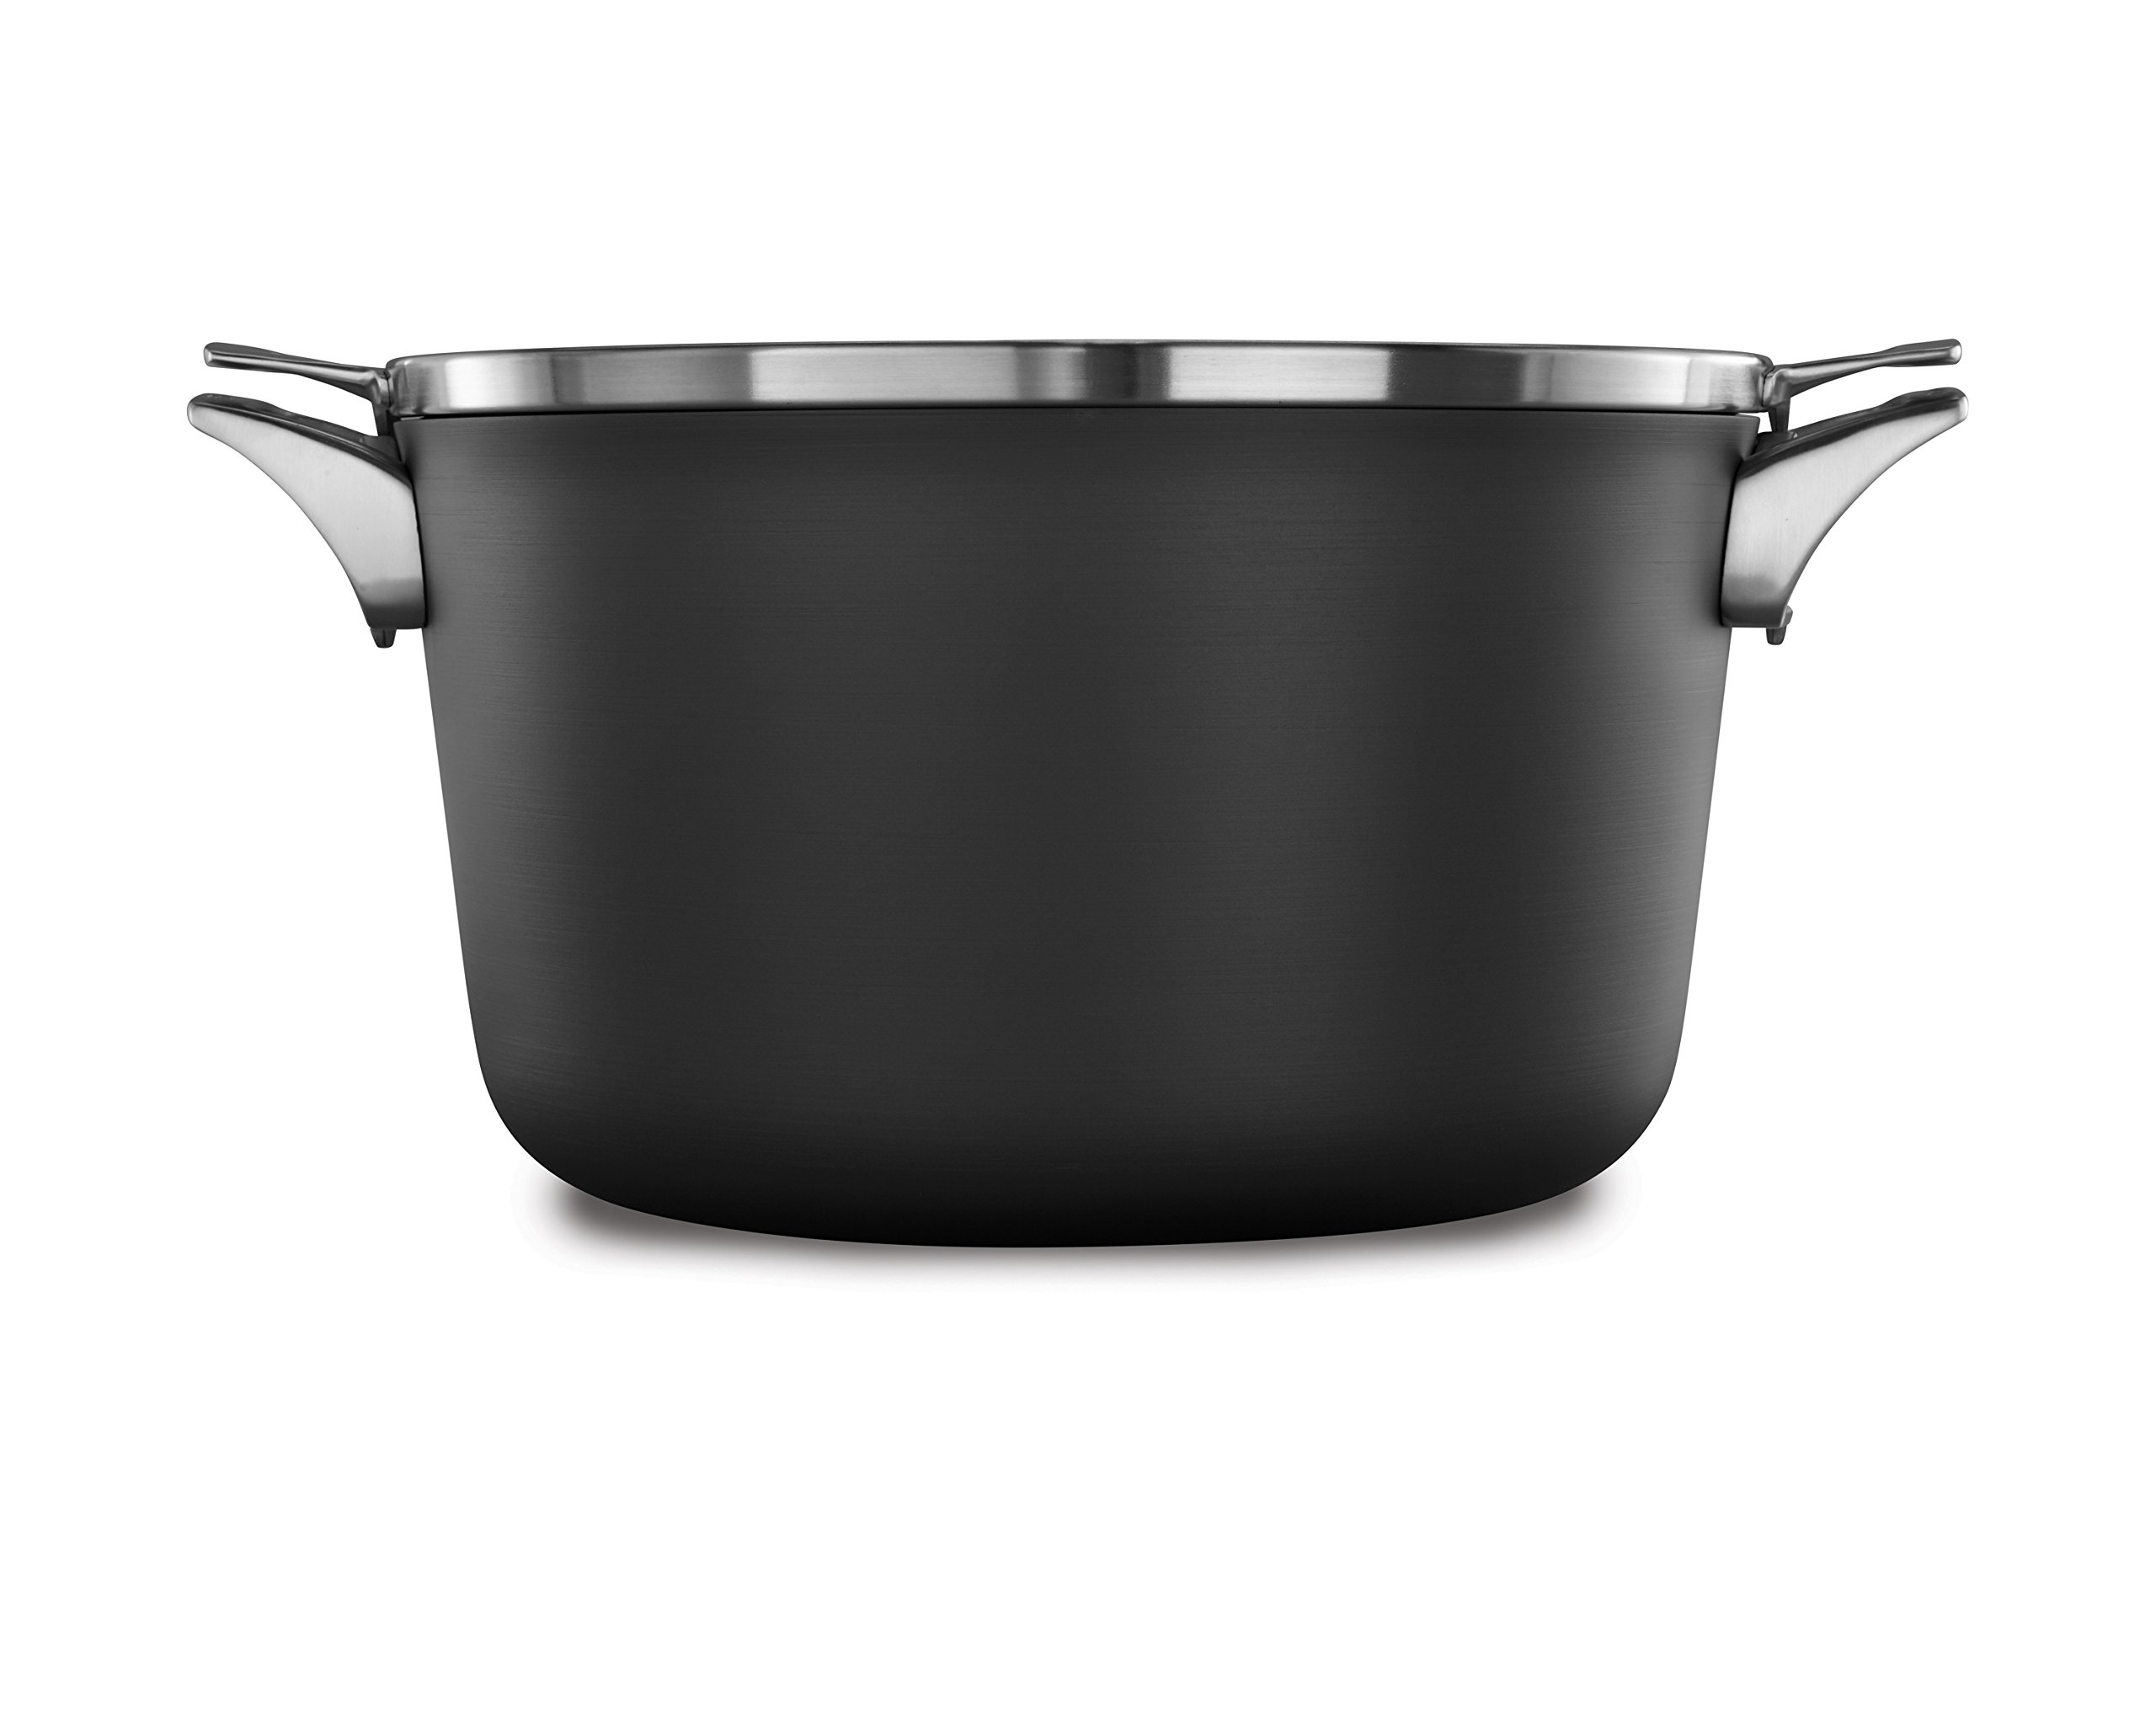 Calphalon Premier Space Saving Nonstick 12qt Stock Pot with Cover